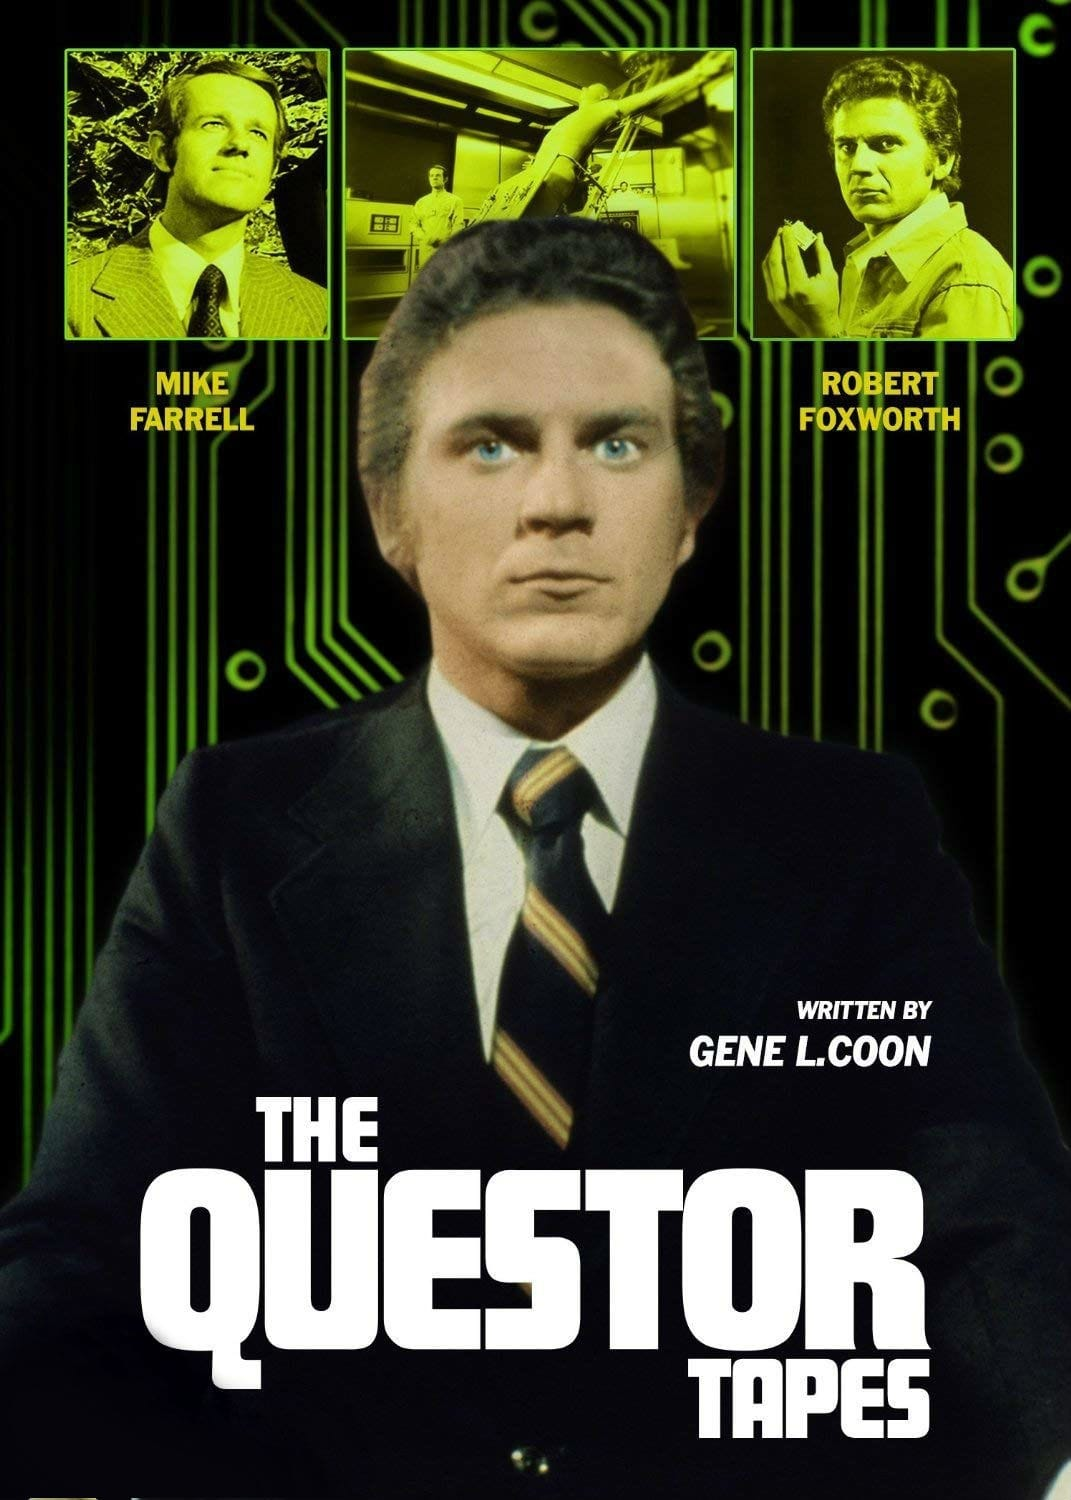 The Questor Tapes (1974)